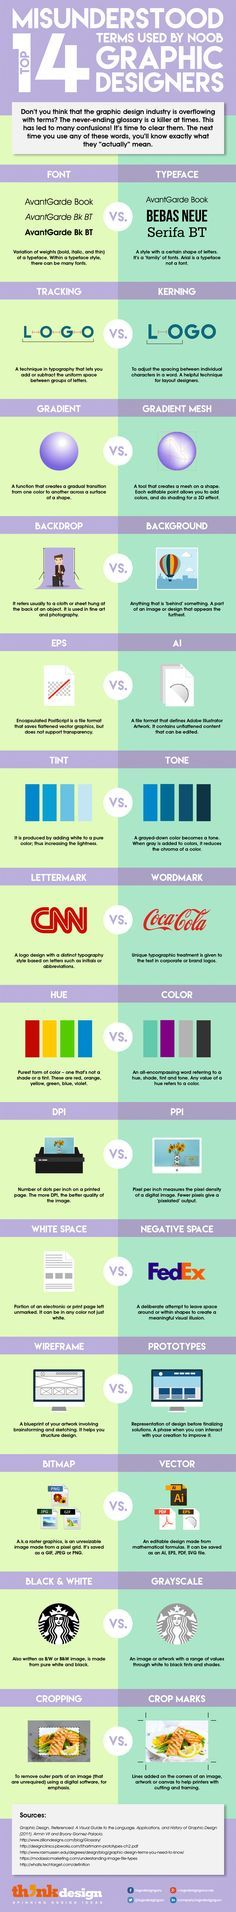 14 Graphic Design Terms Commonly Misused By Novice Designers